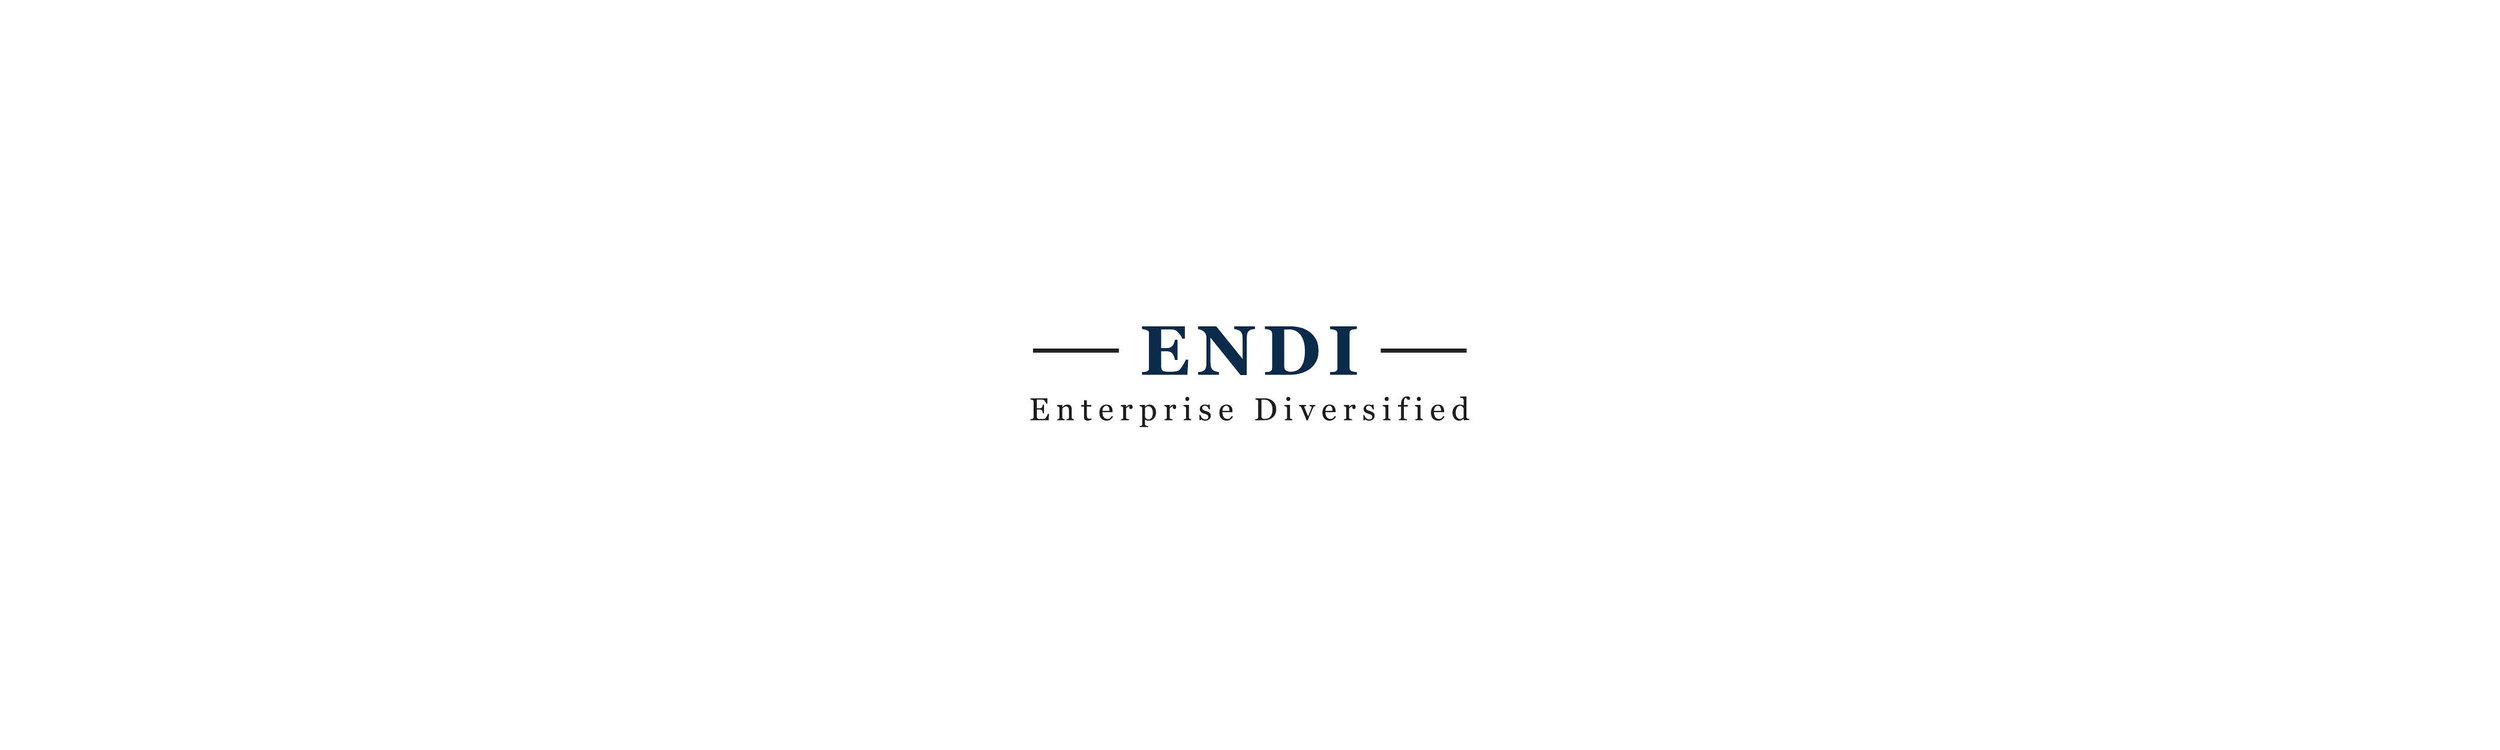 ENDI Branding by Casi Long Design | casilong.com 6.jpg